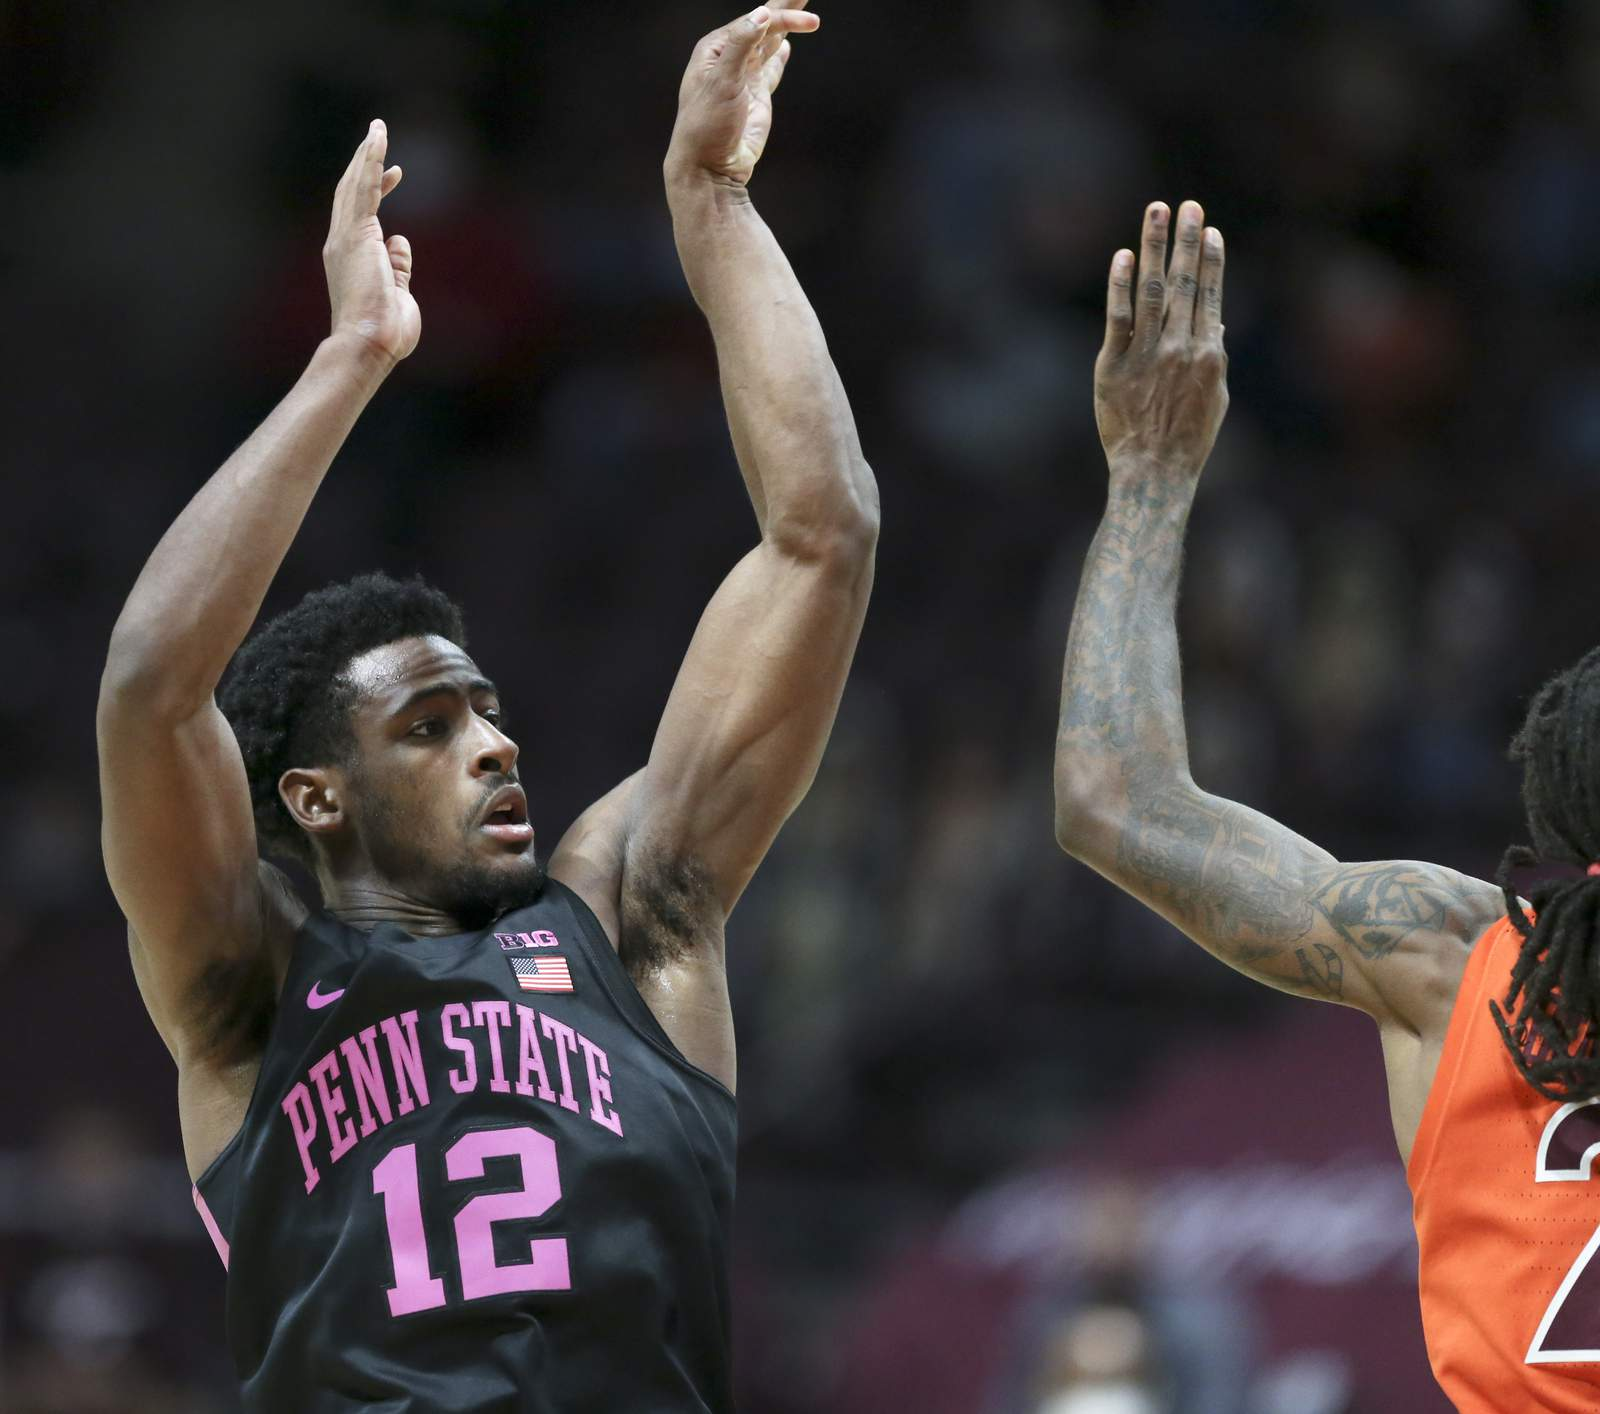 Brockington Leads Penn St To 75 55 Rout At No 15 Virginia Tech